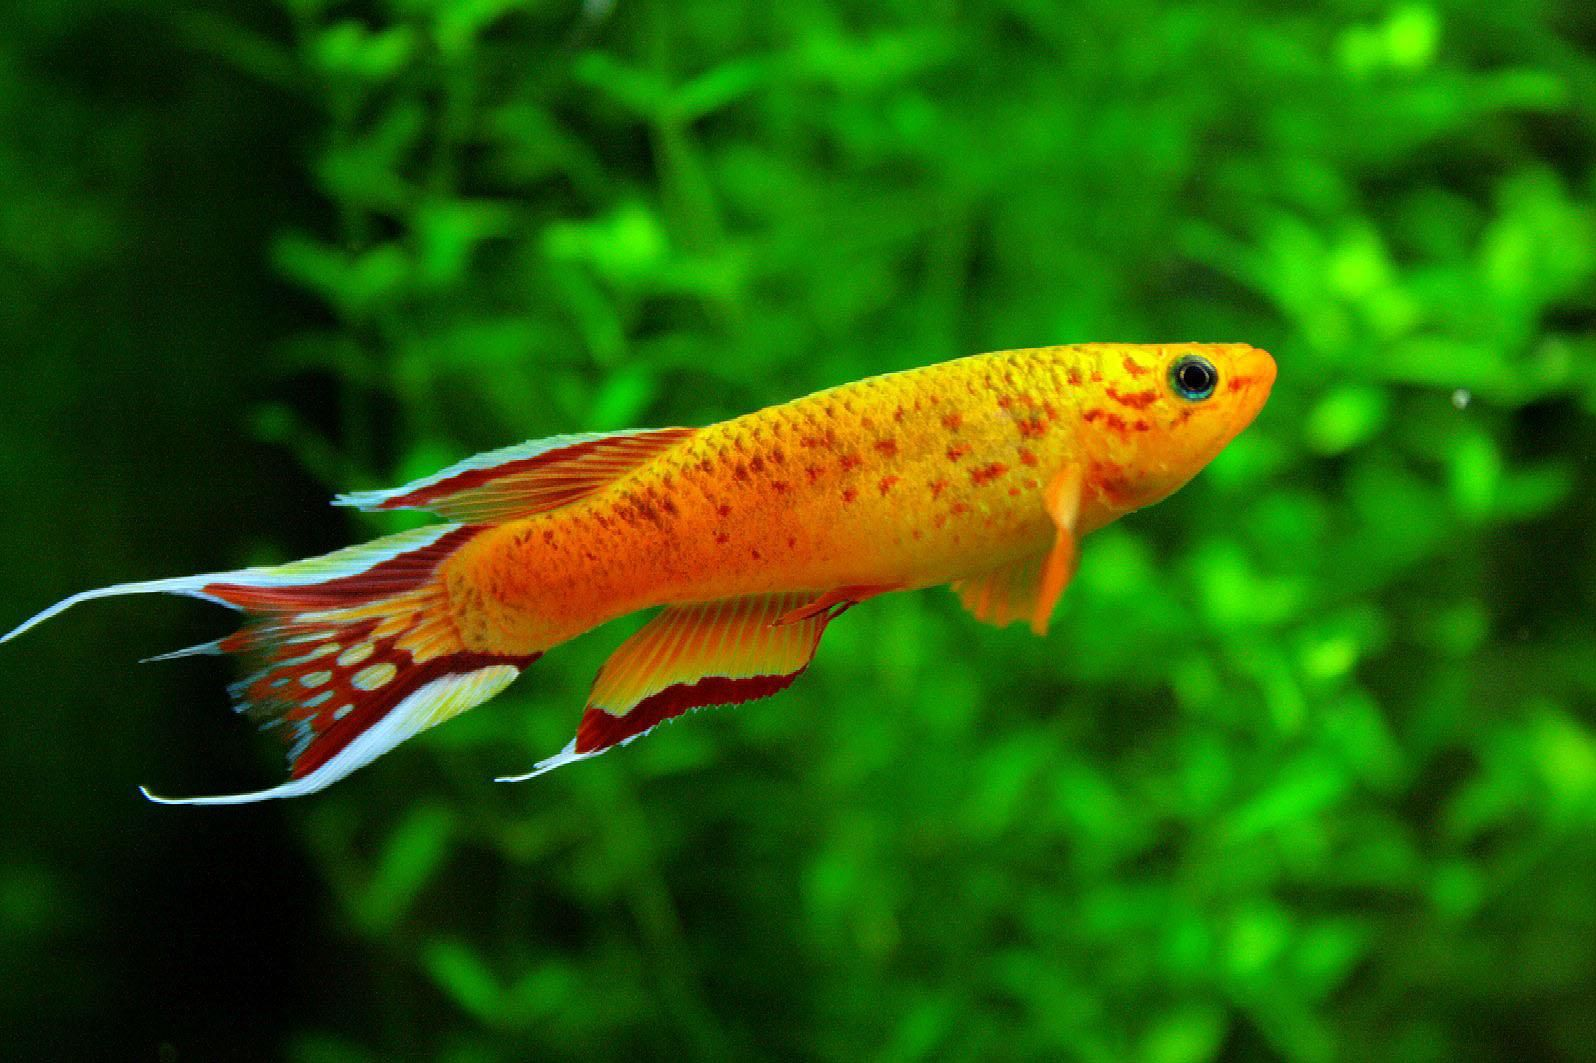 Freshwater aquarium fish photos - Freshwater Fish Tropical Discussion Tropical Fish Forums Wallpaper